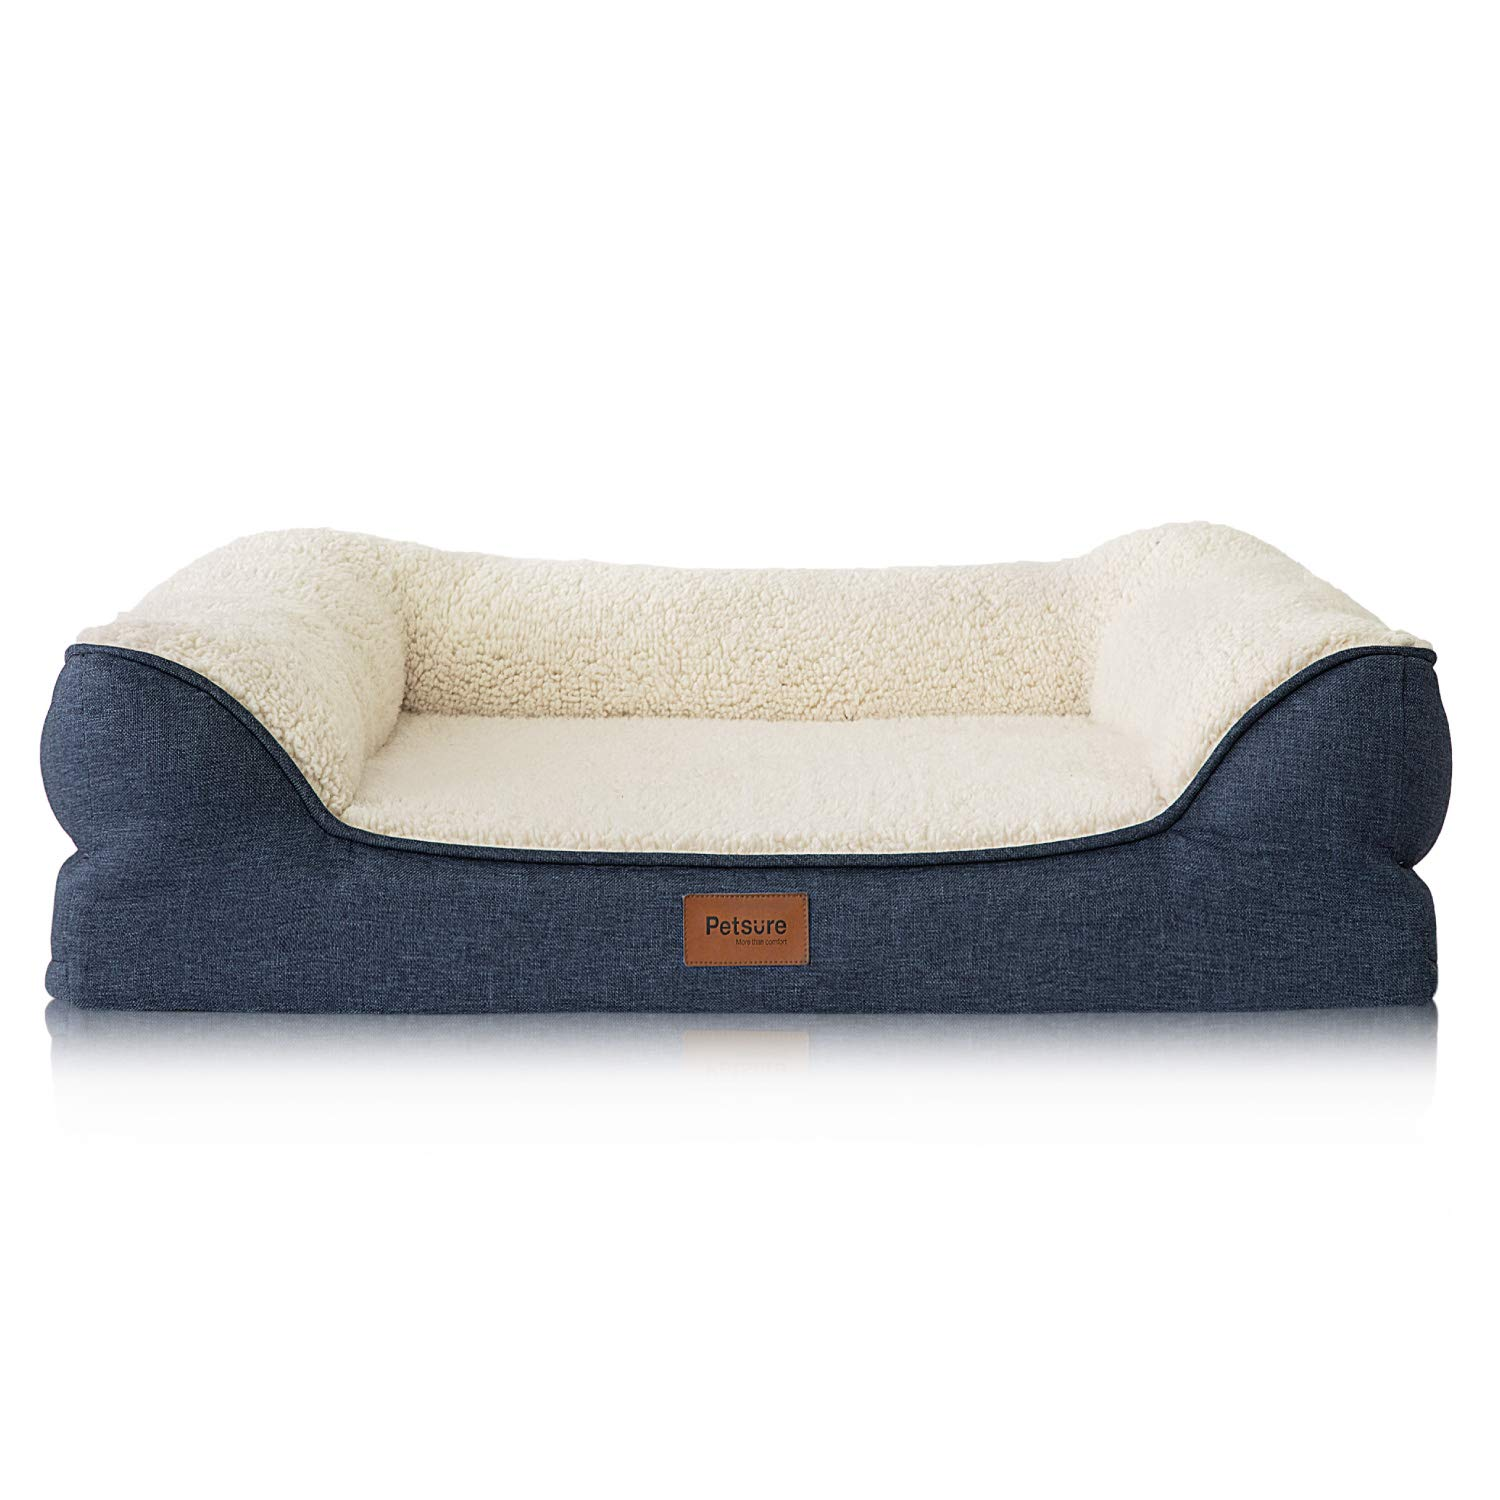 Petsure 28 36 42 inches Orthopedic Memory Foam Dog Bed for Small, Medium, Large Dogs Pets – Bolster Couch Extra Large Dog Beds Washable with Removable Cover, Nonskid Bottom